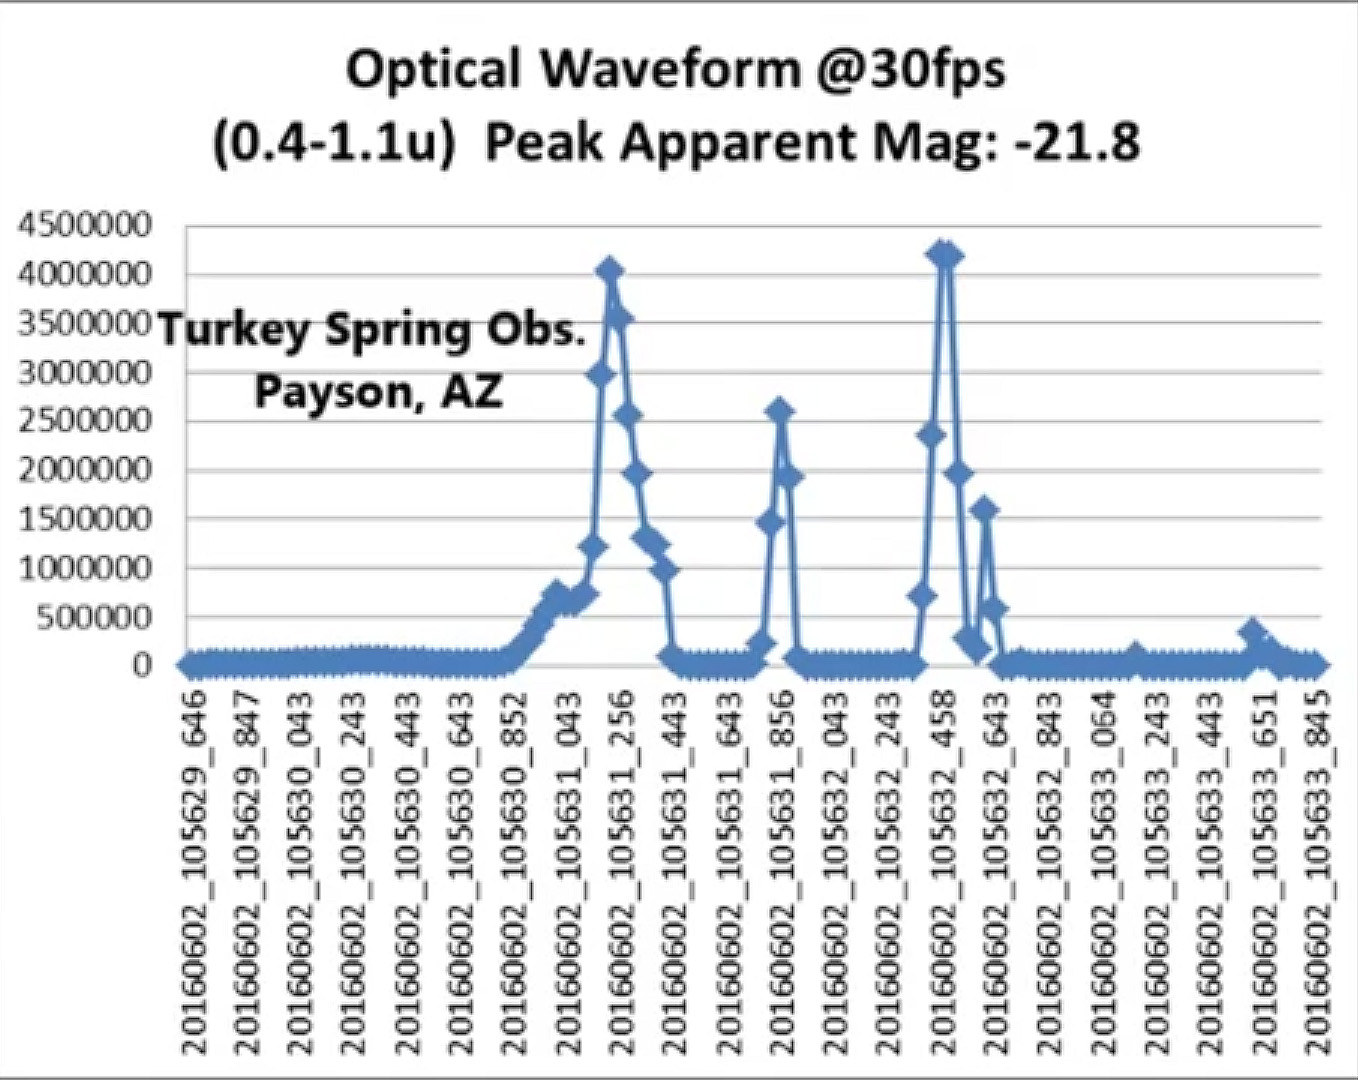 Optical Waveform of Turkey Spring Obs., Payson, Arizona / Image: SkySentinel